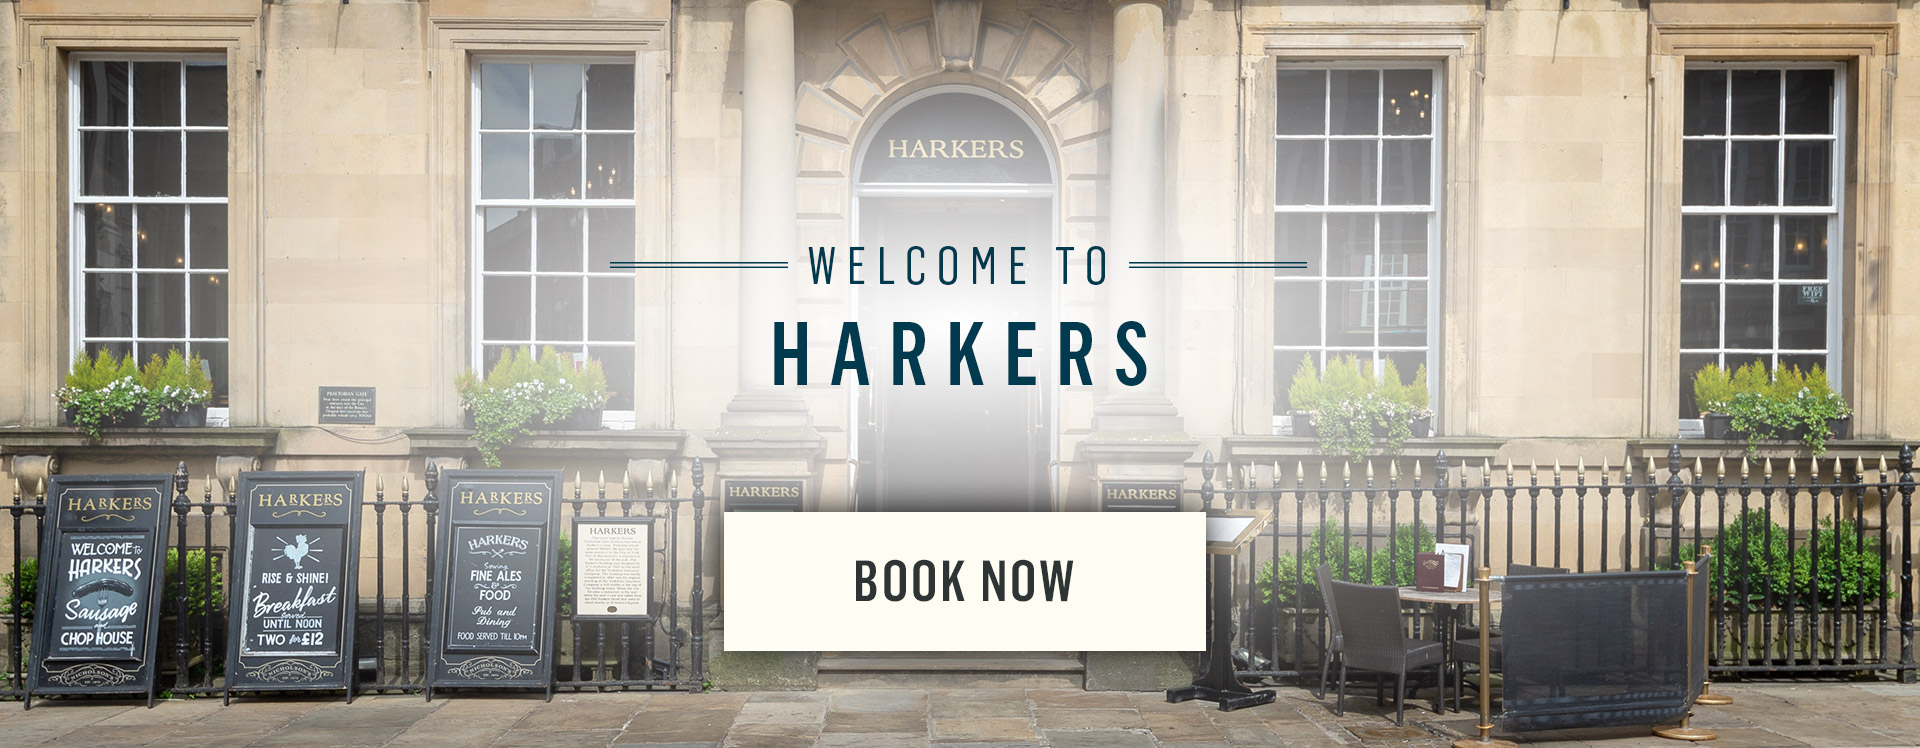 Welcome to Harkers - Book Now